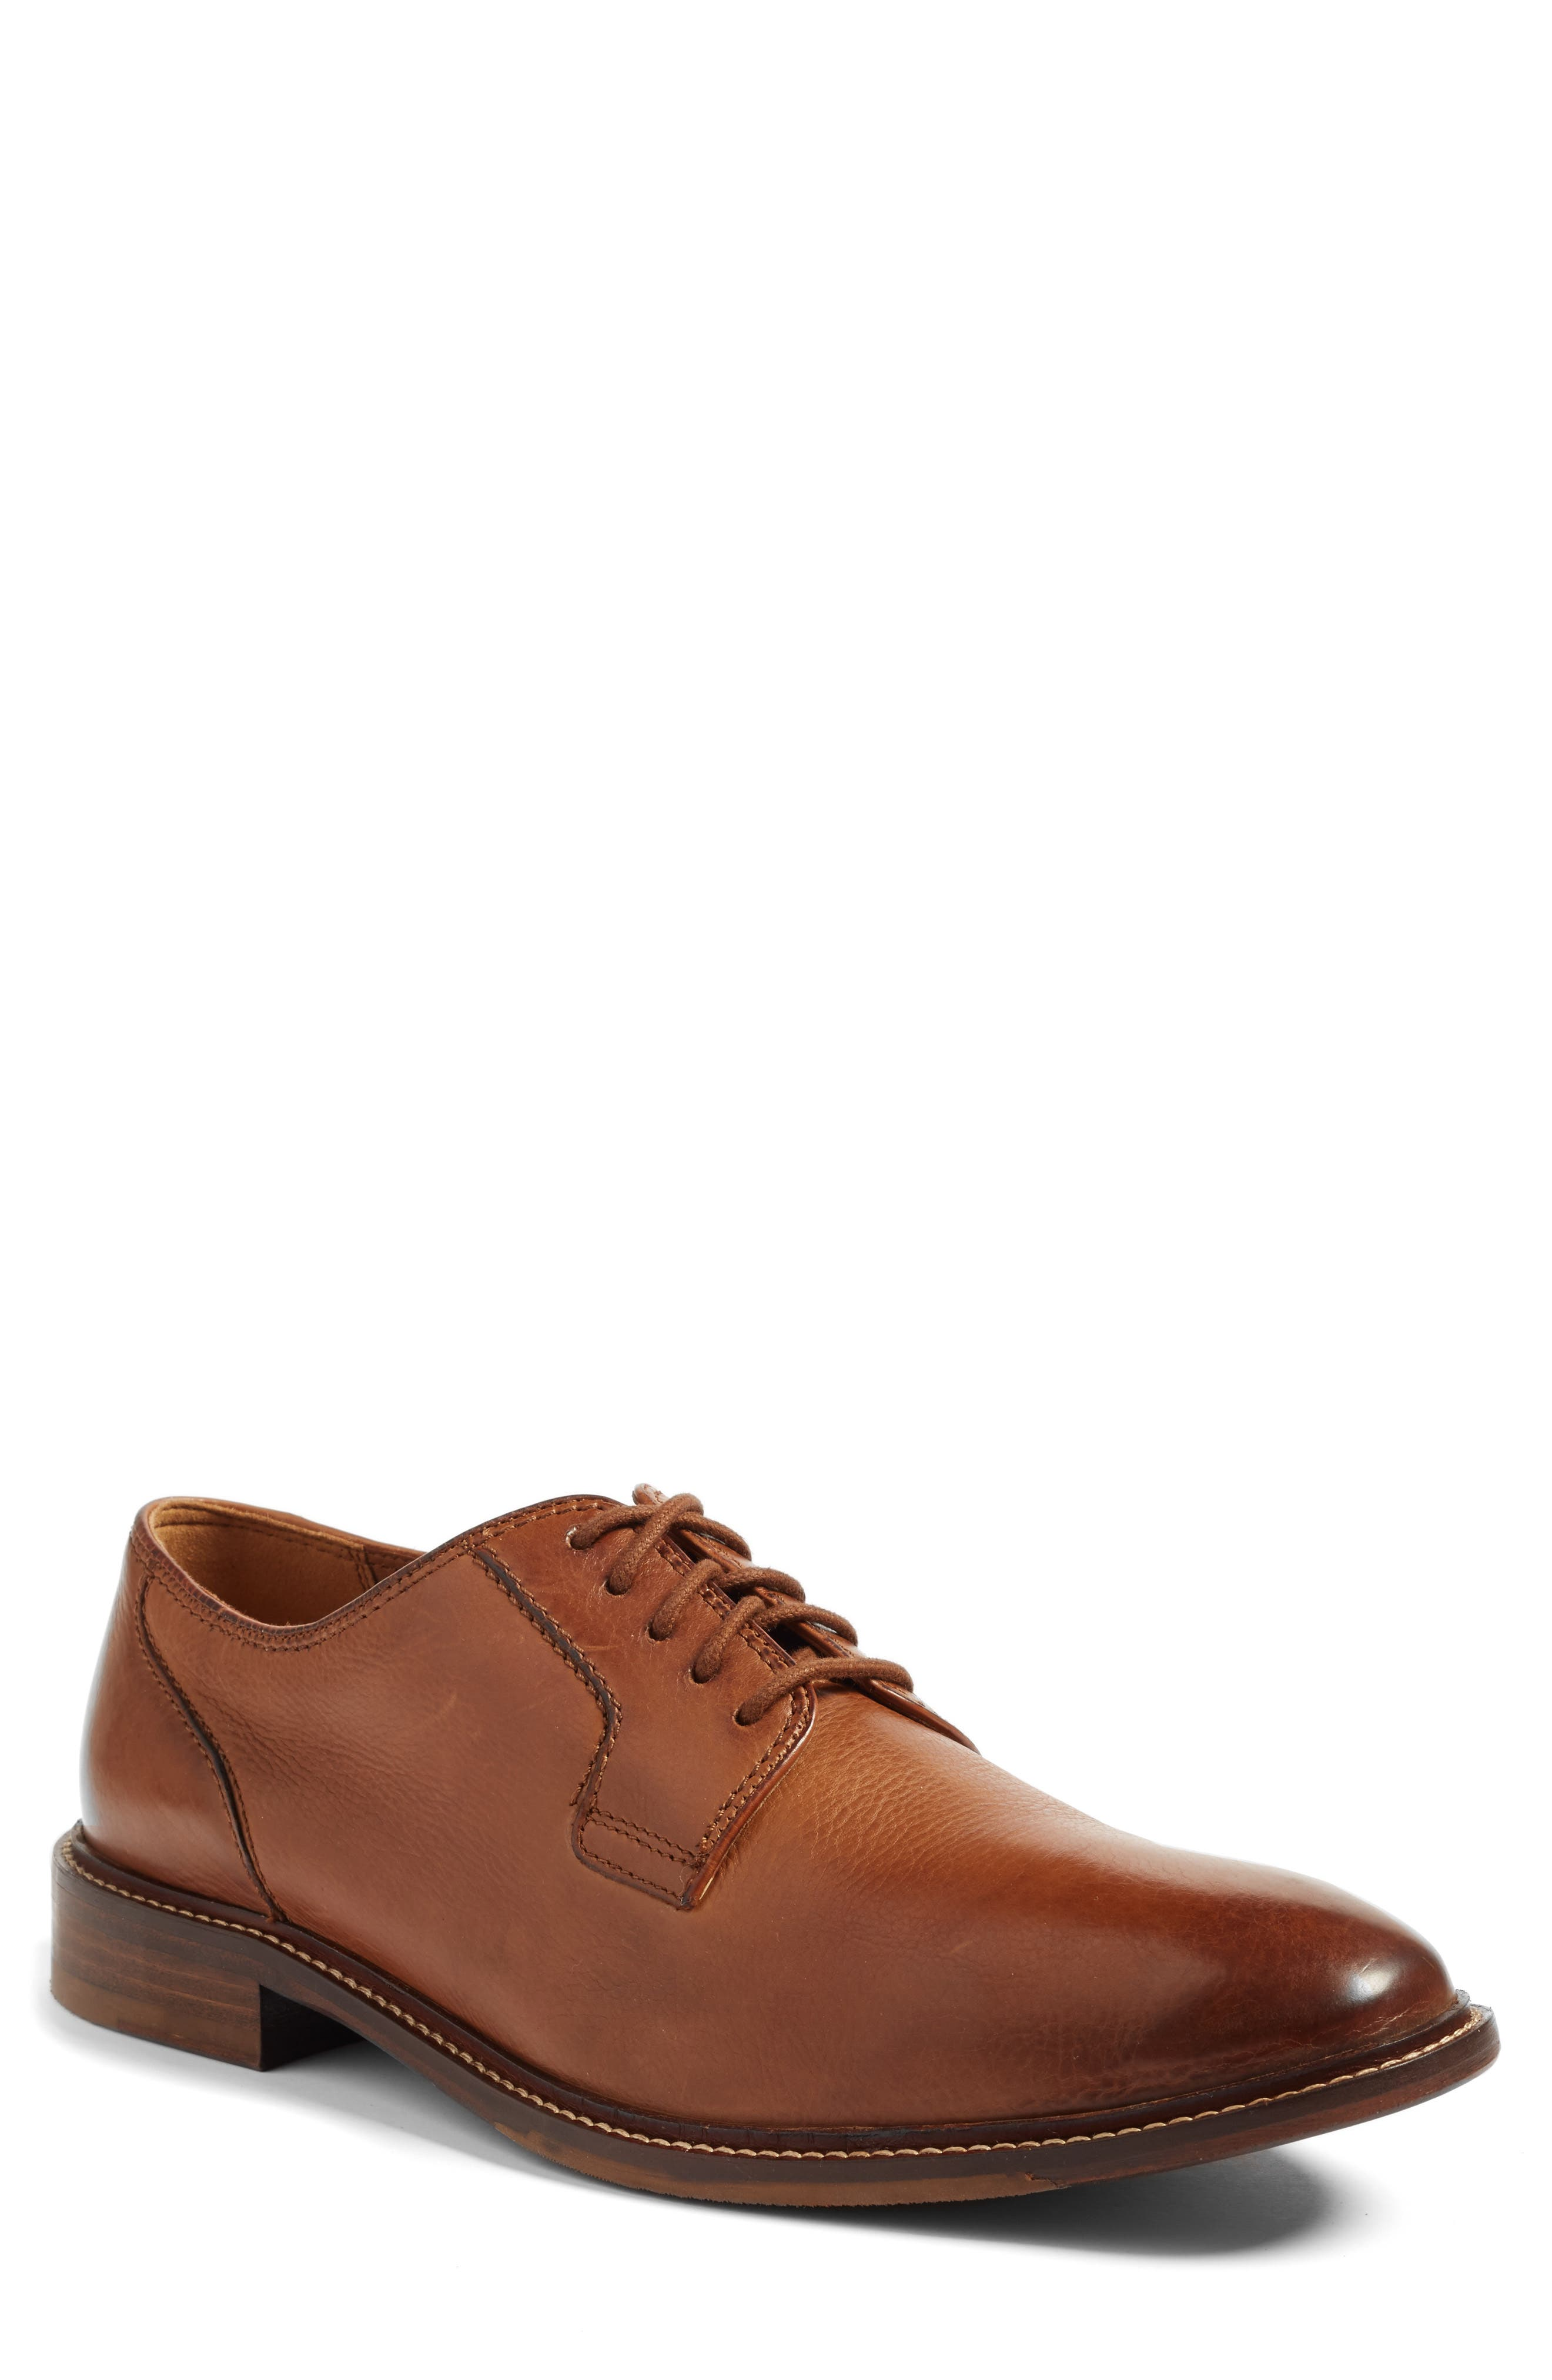 Stefano Plain Toe Derby,                         Main,                         color, 200